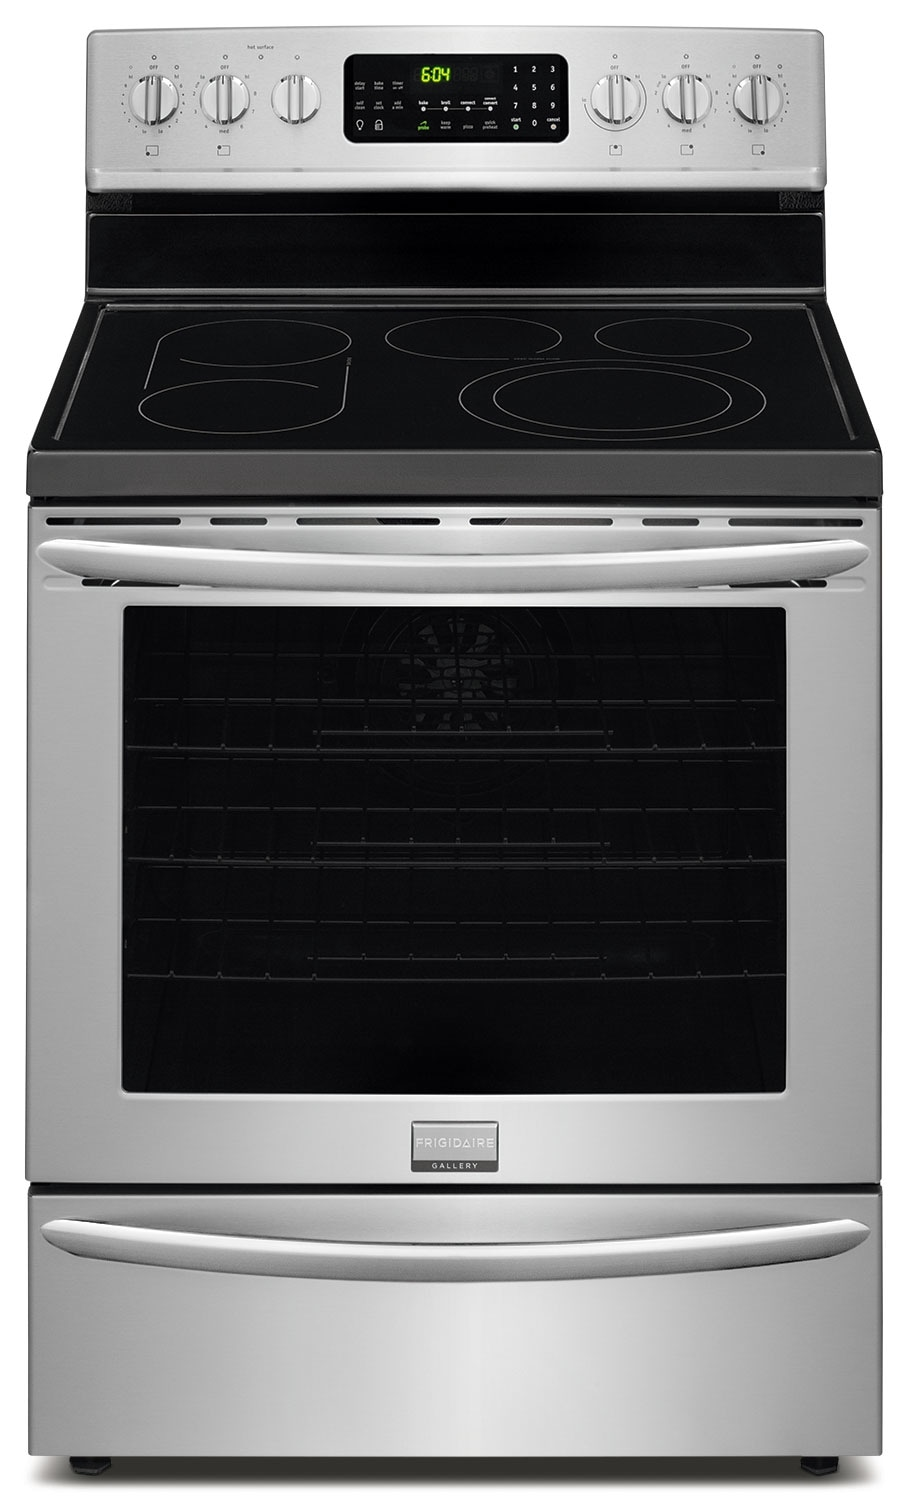 Frigidaire Gallery 5.8 Cu. Ft. Electric Range - Stainless Steel